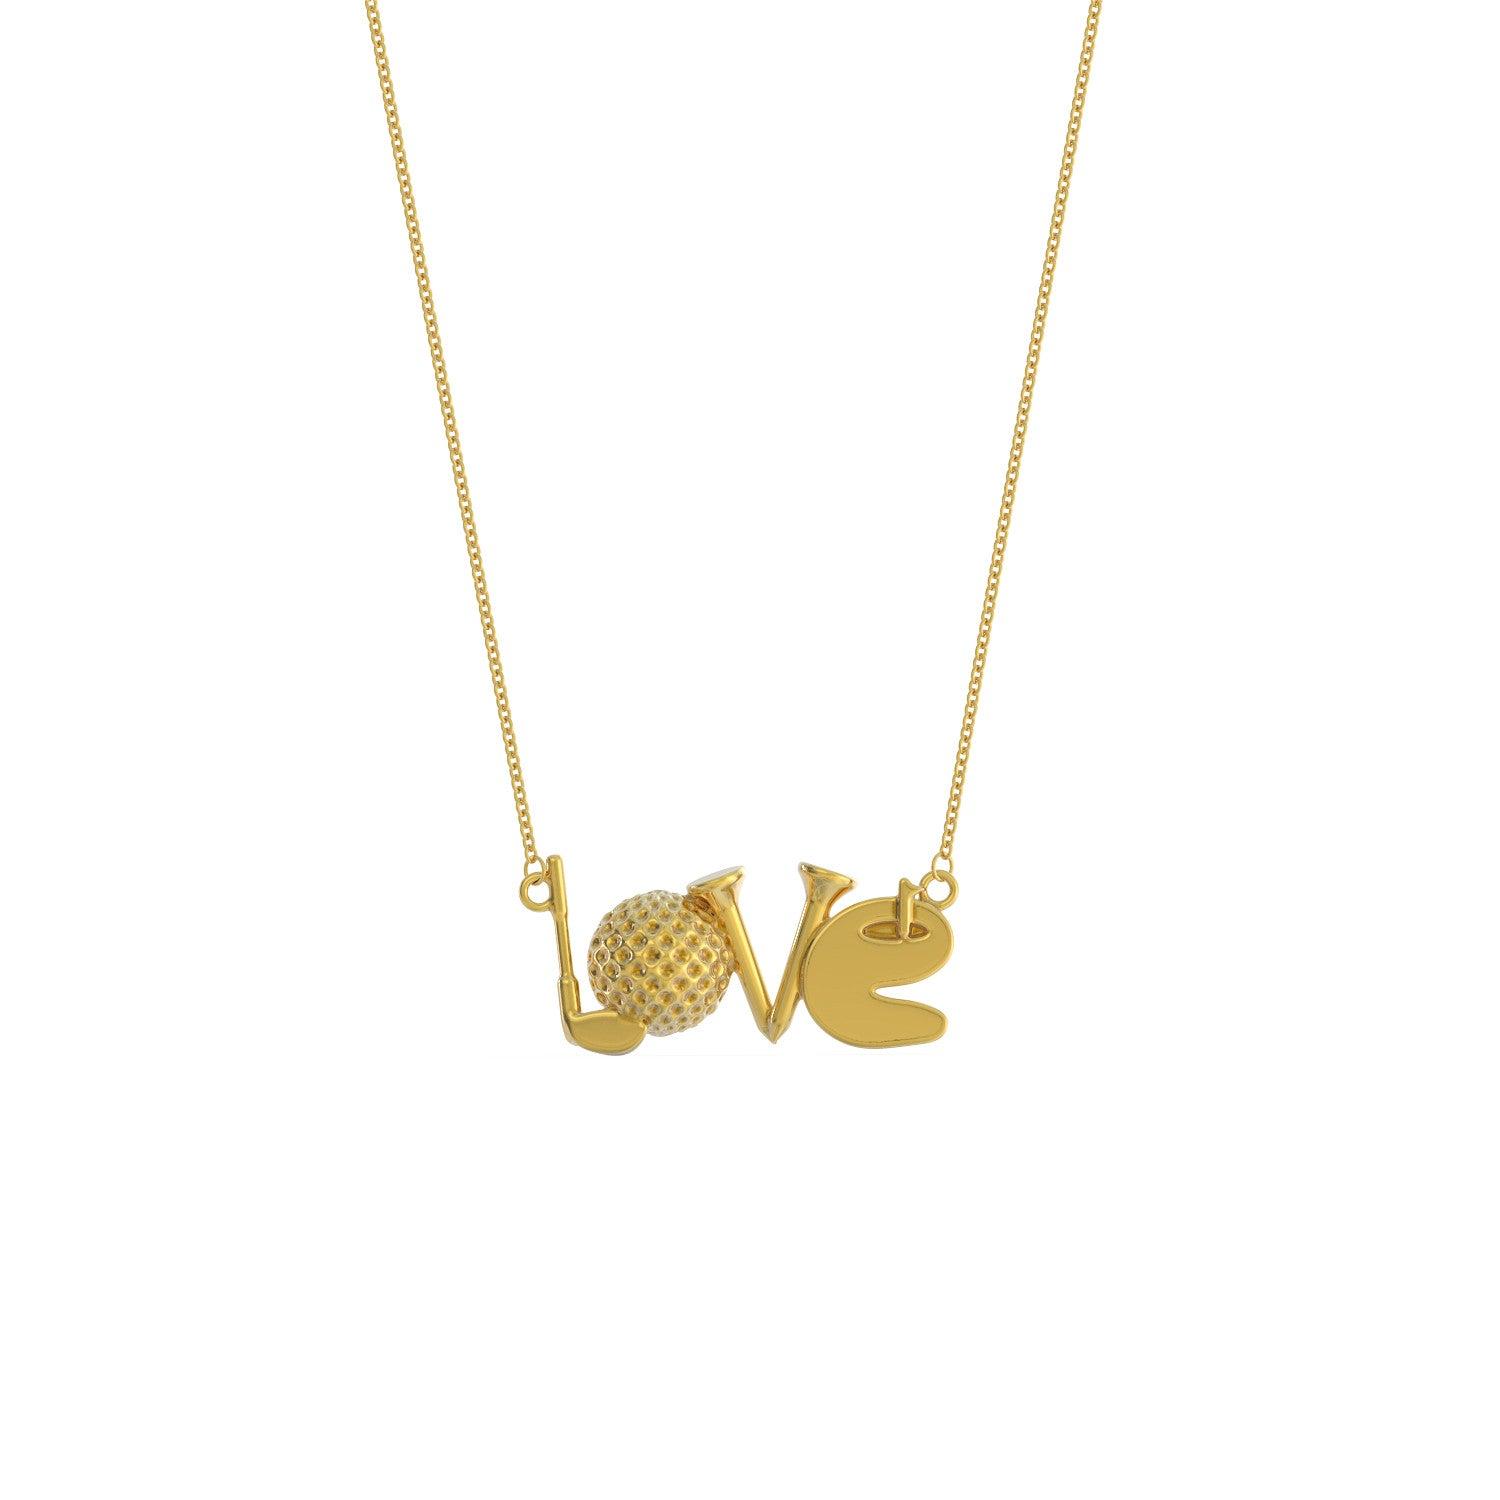 LOVE - Golf - Necklace